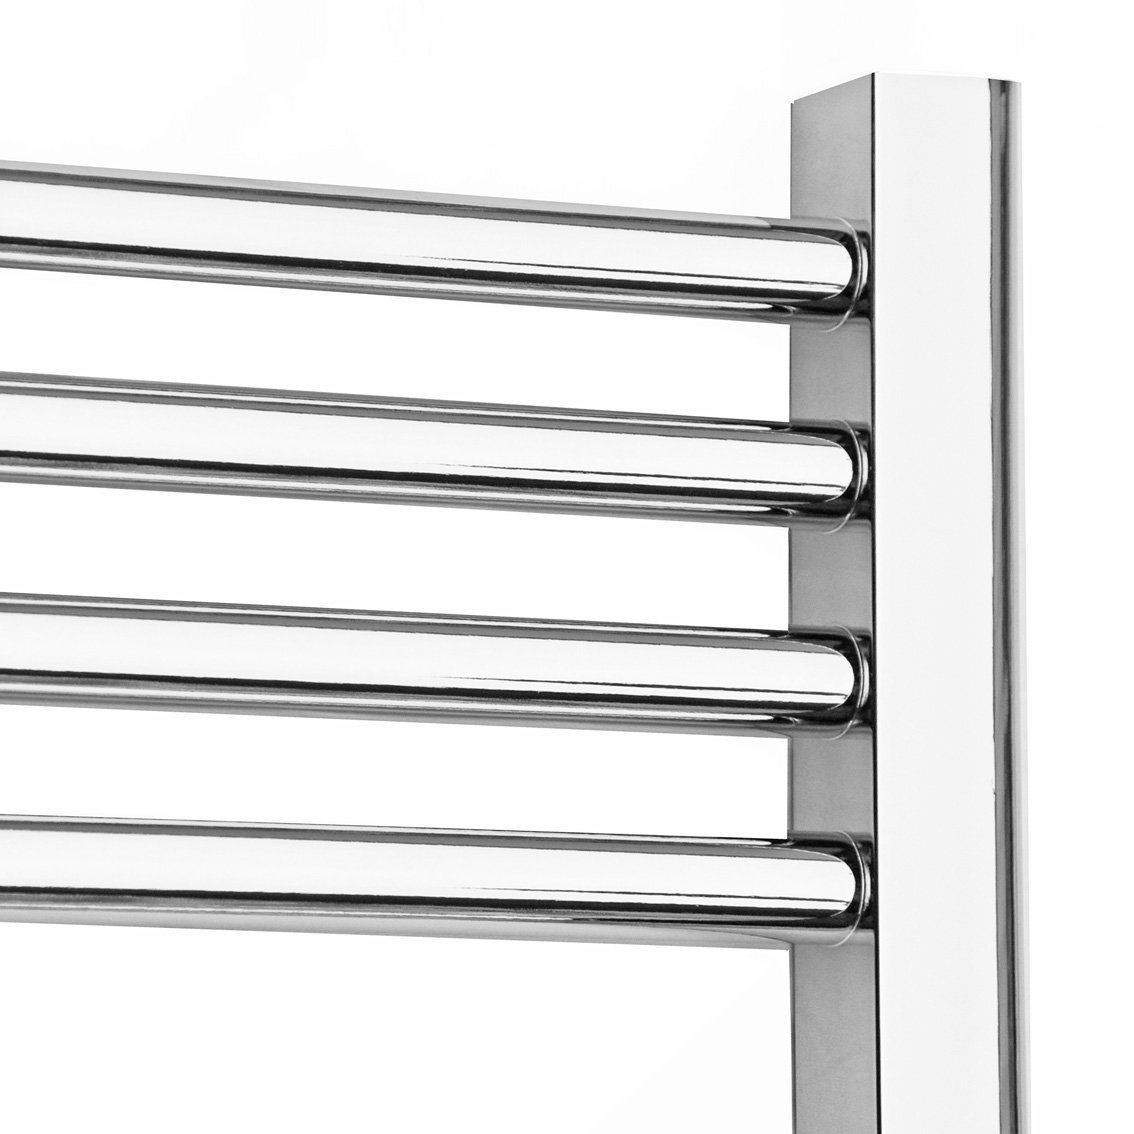 Natasha ladder rail straight modern electric towel radiator in chrome - 600 X 800 Heated Towel Rail Radiator Warmer Straight Chrome 1624 Btu S Amazon Co Uk Diy Tools